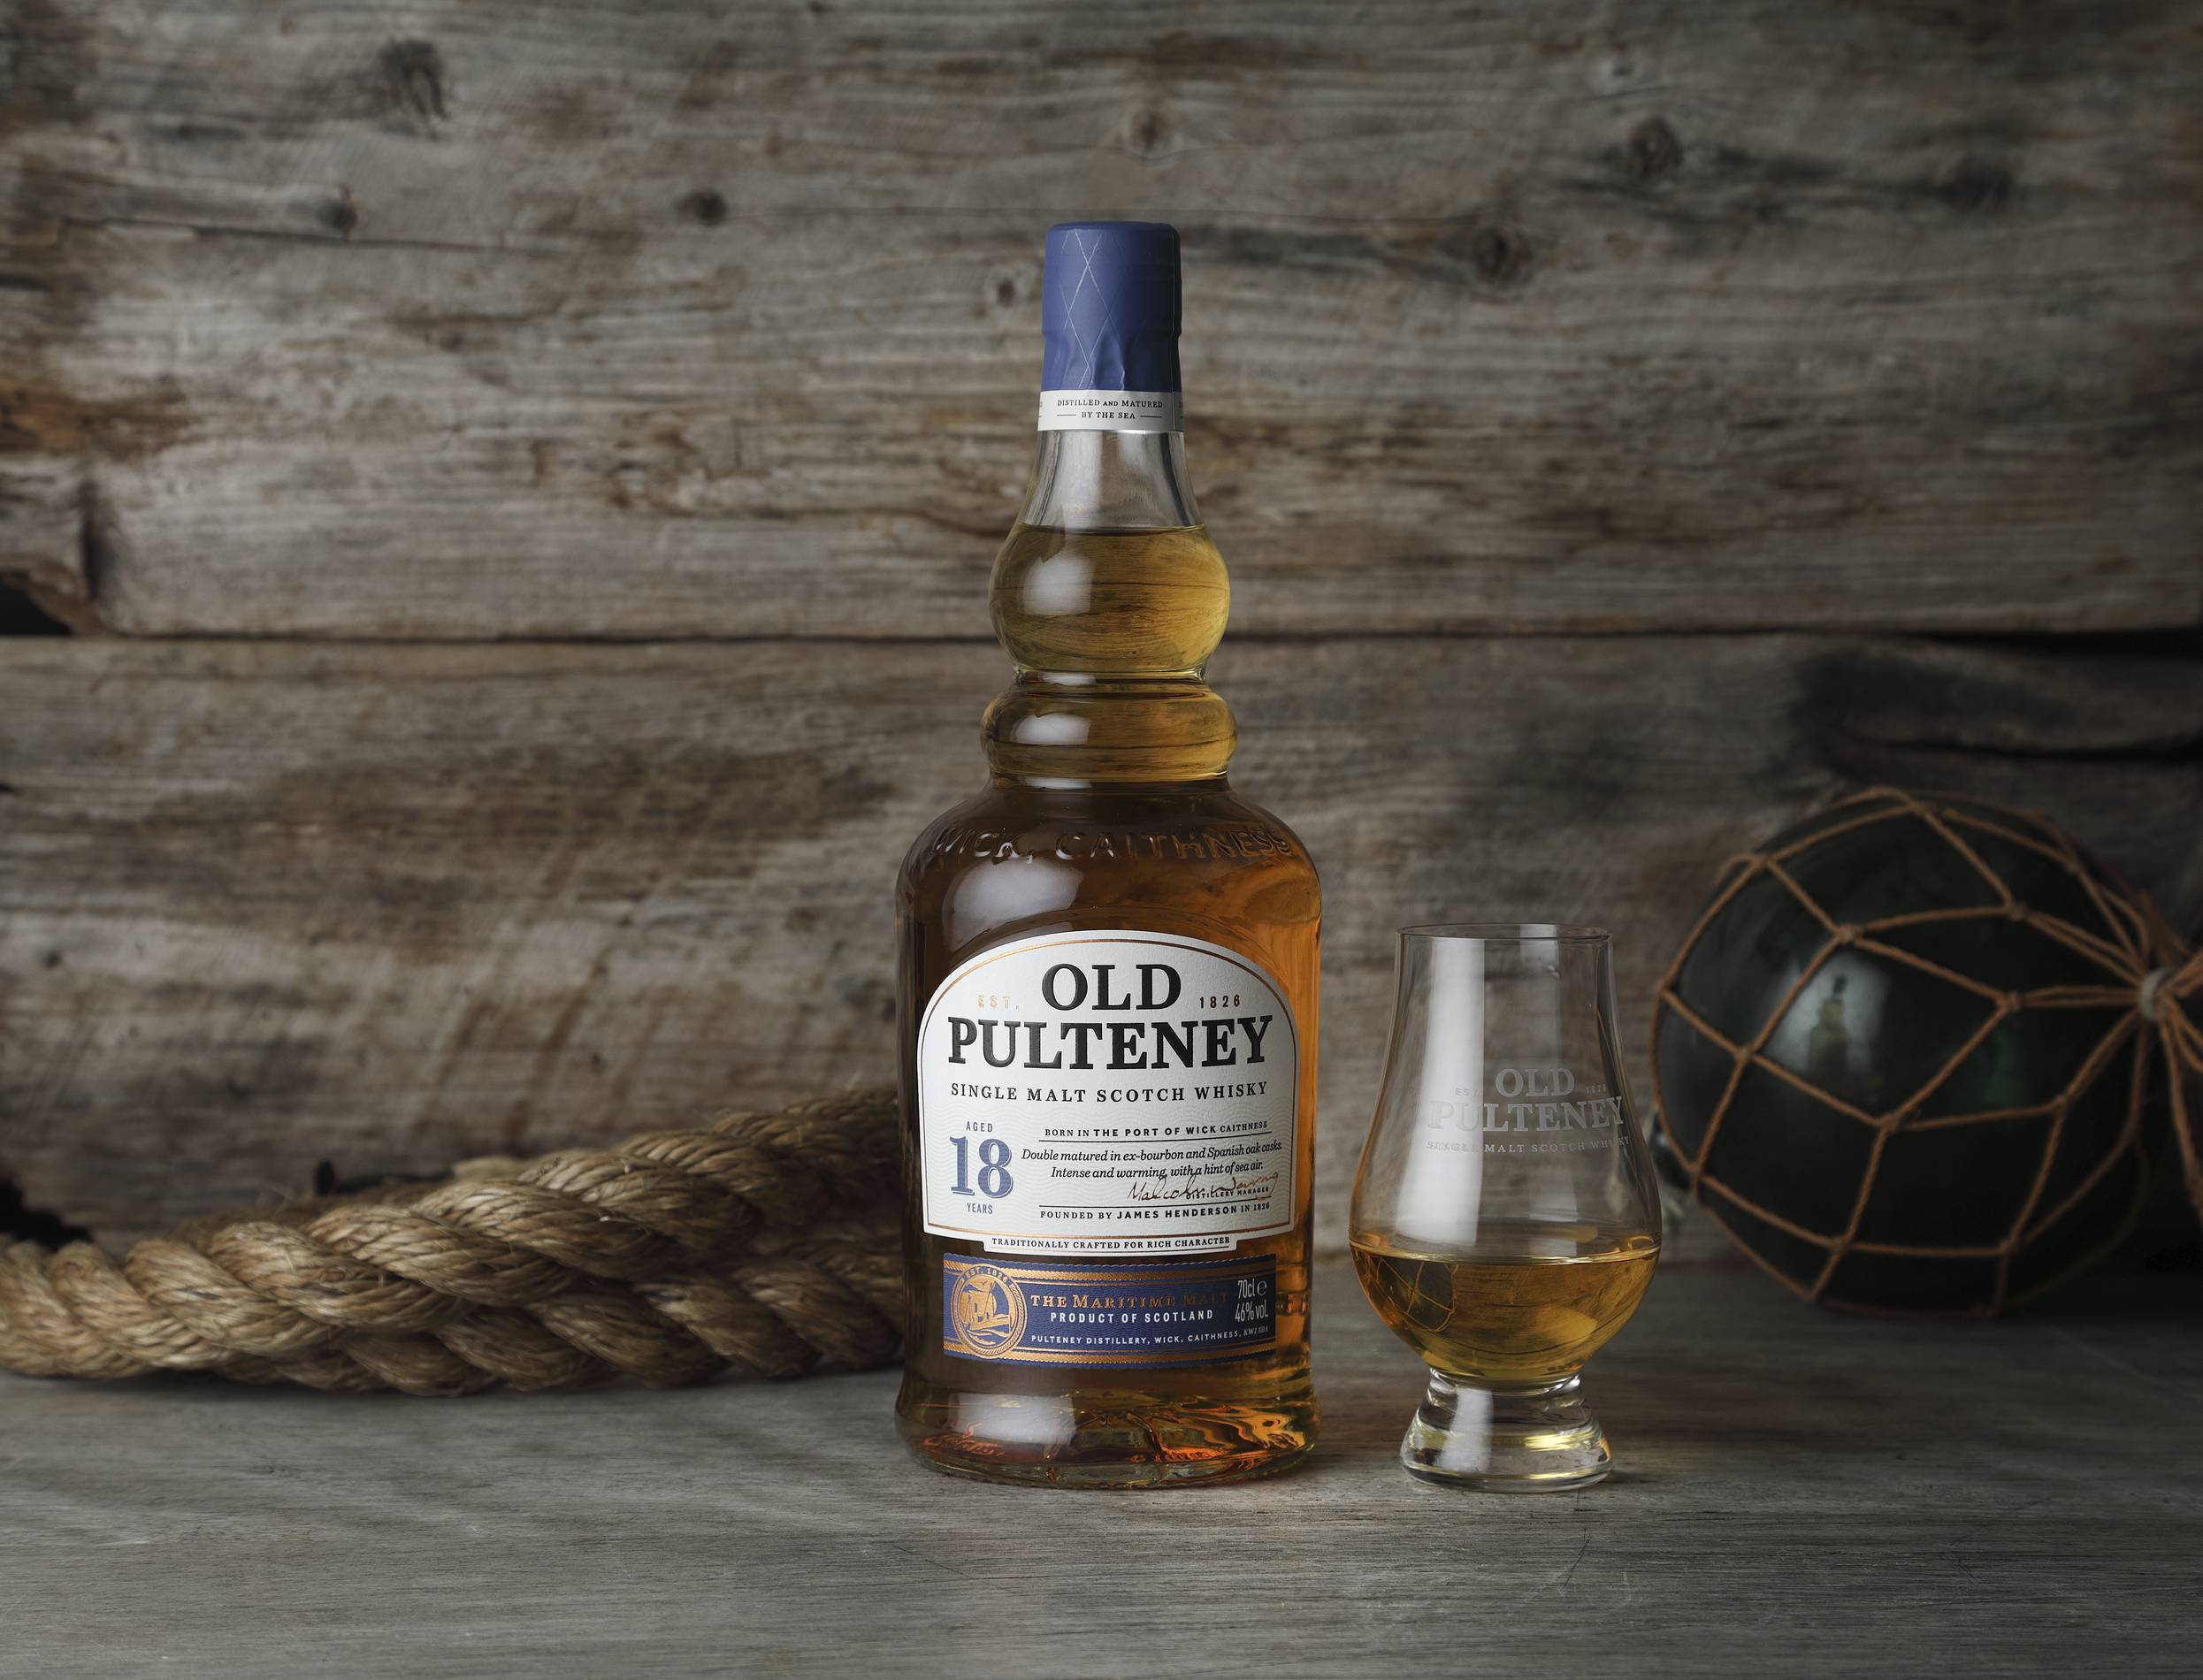 Old Pulteney 18 single malt scotch bottle